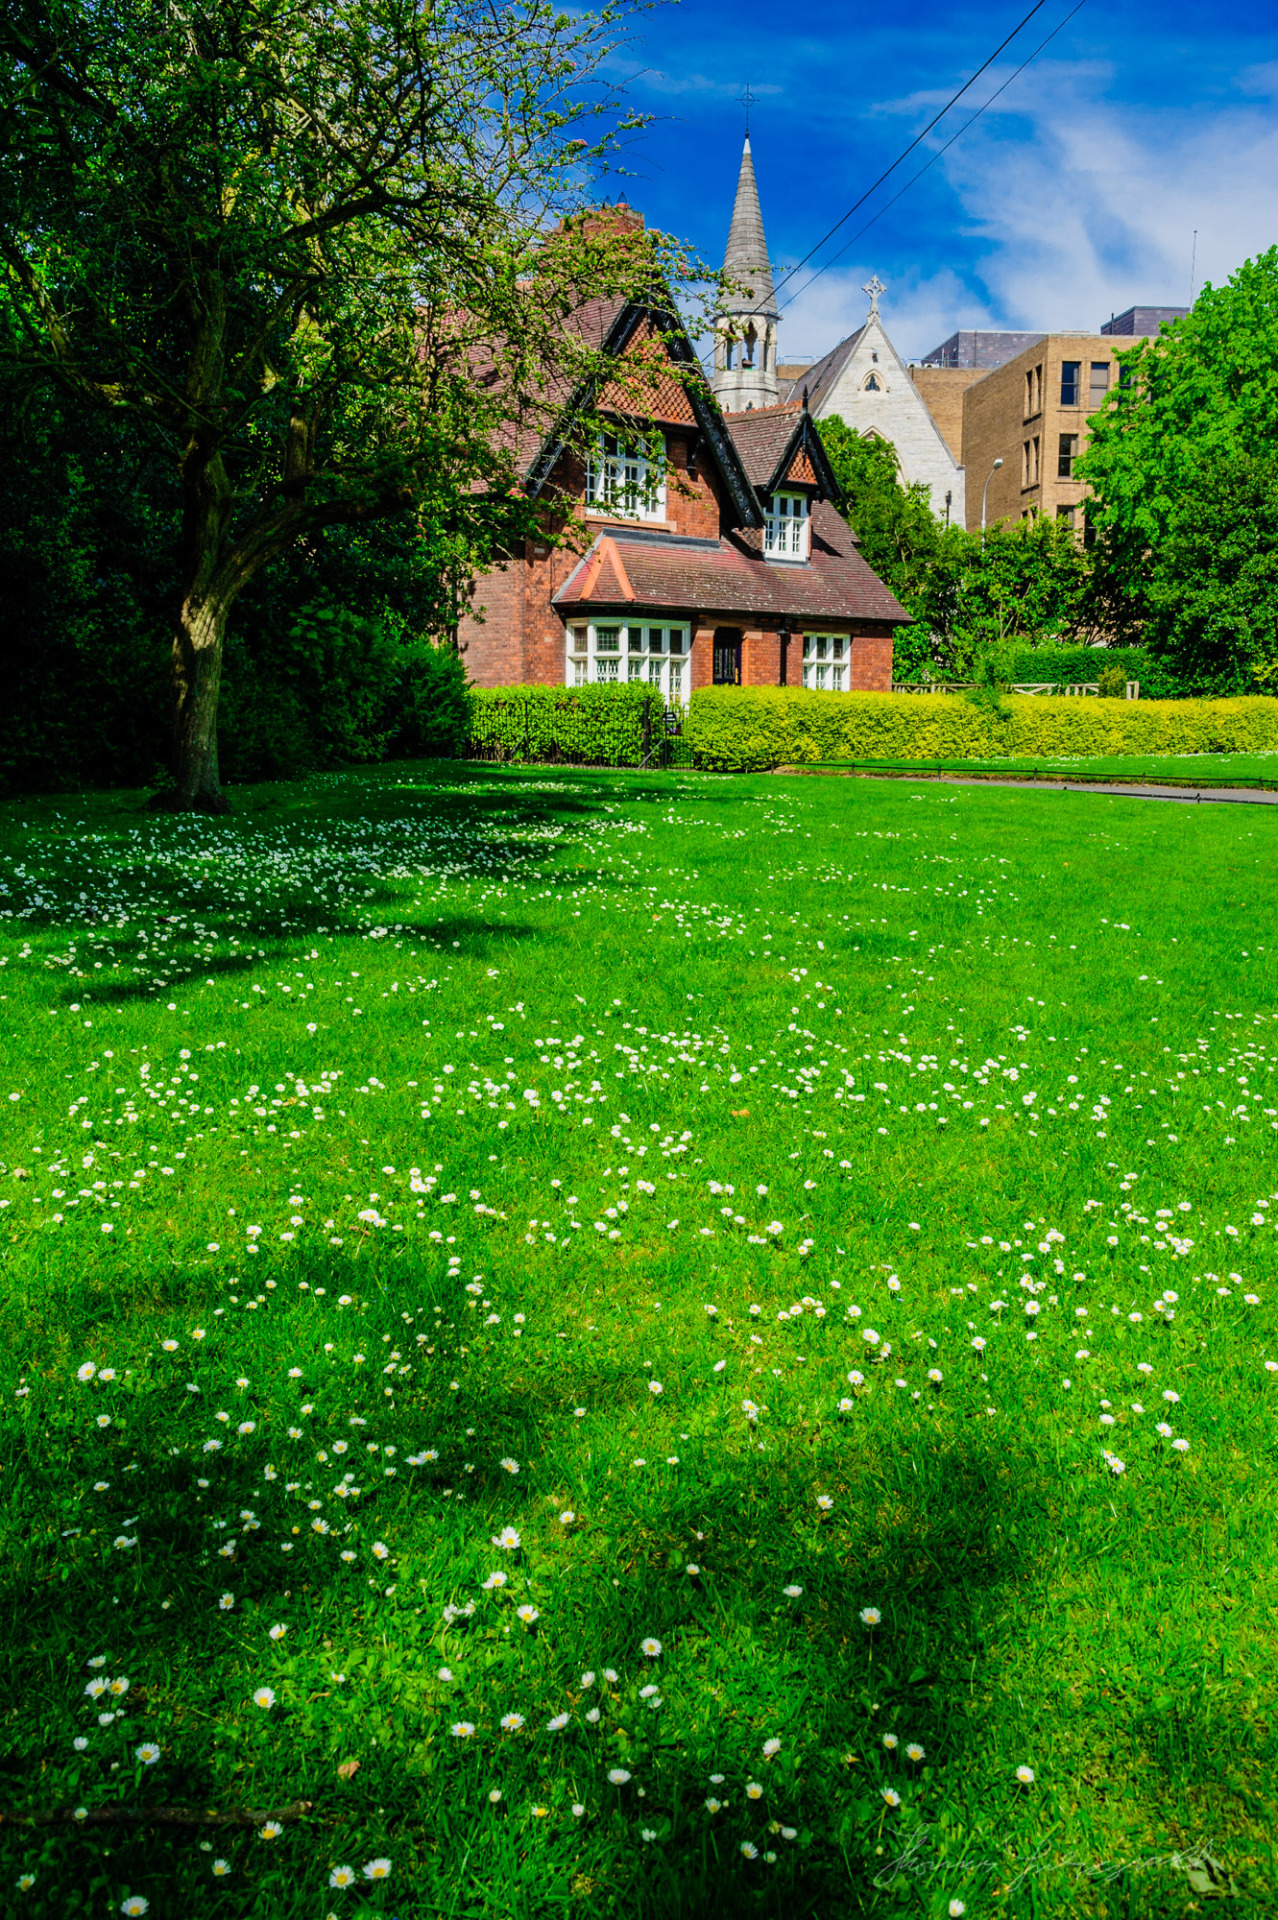 A beautiful Summer's Day in Stephen's Green with lots of daisies on the grass in front of the little red house!